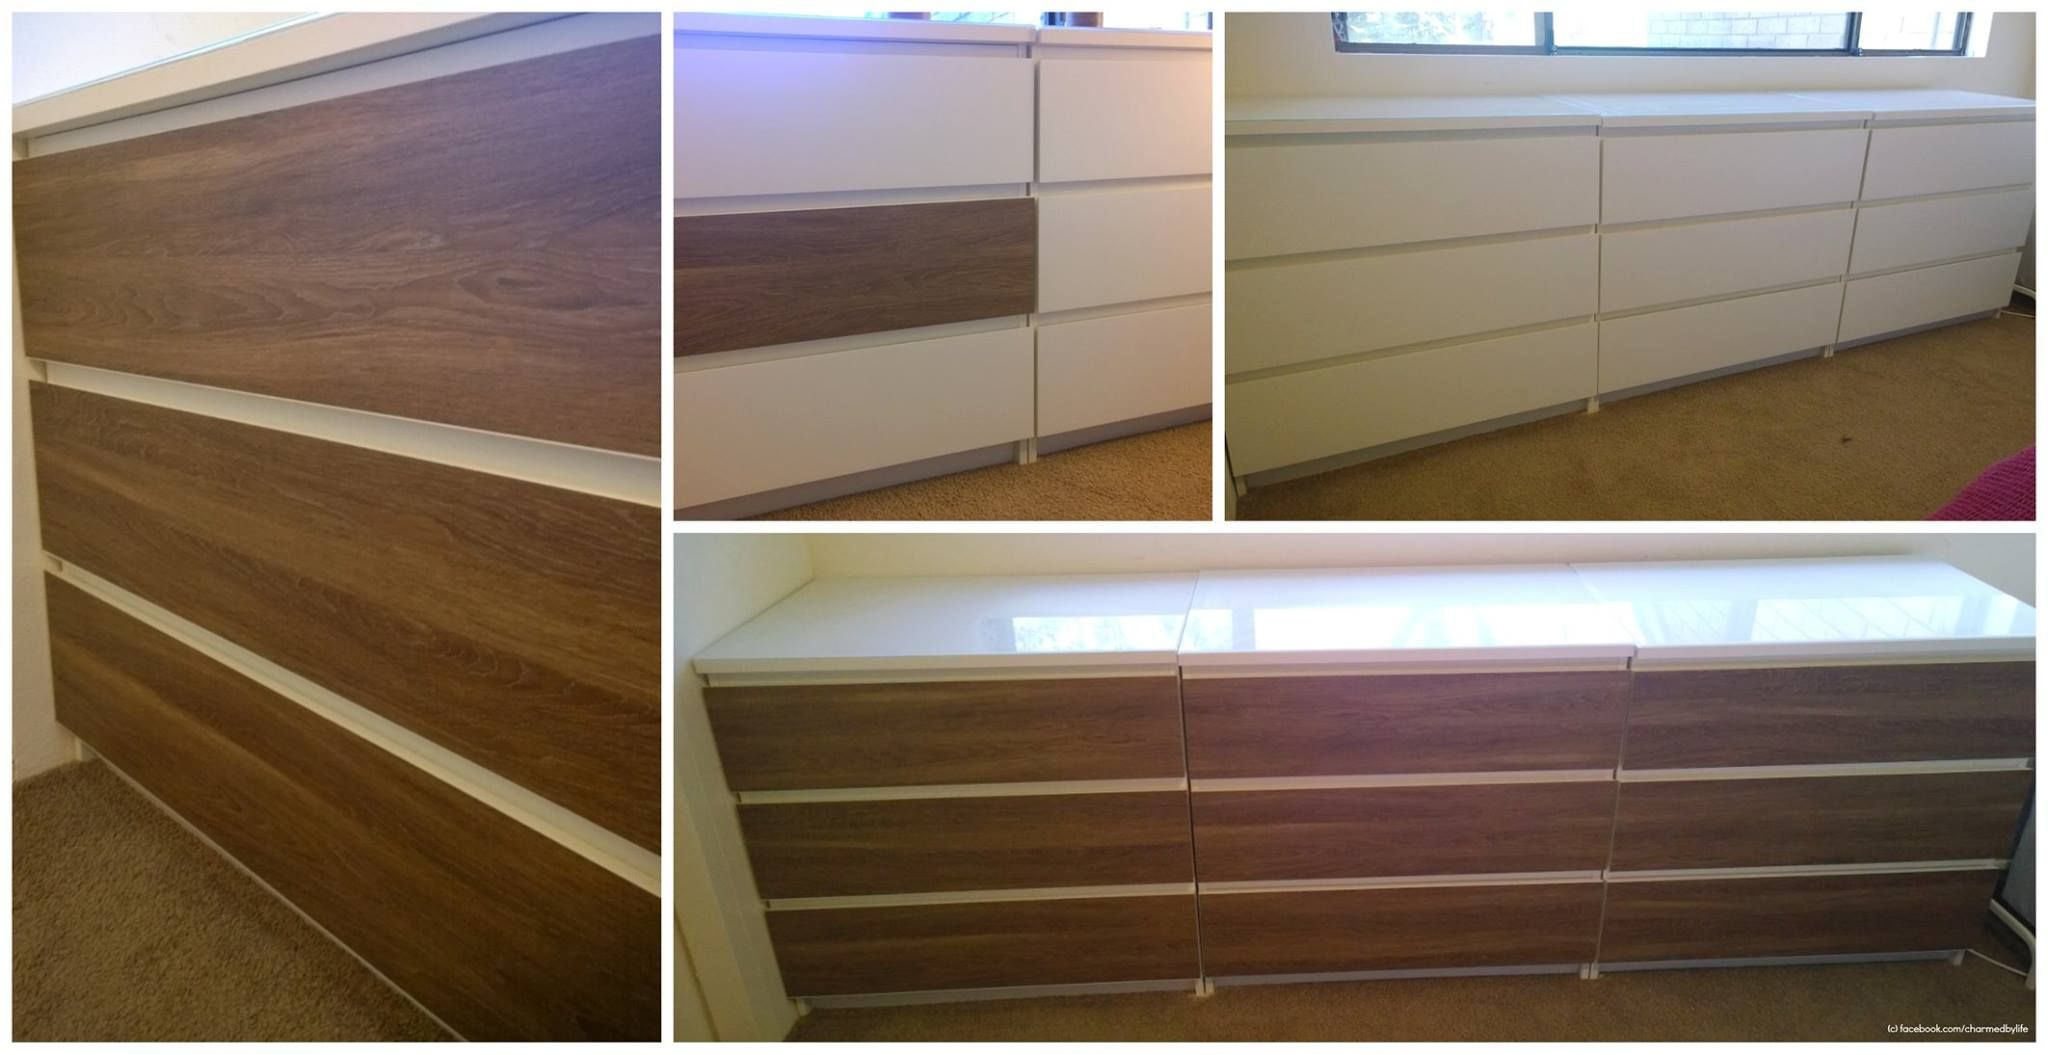 Brilliant display of Limed Oak PANYL on a series of IKEA MALM 3-drawer chests, courtesy of Jacqueline Boyle.